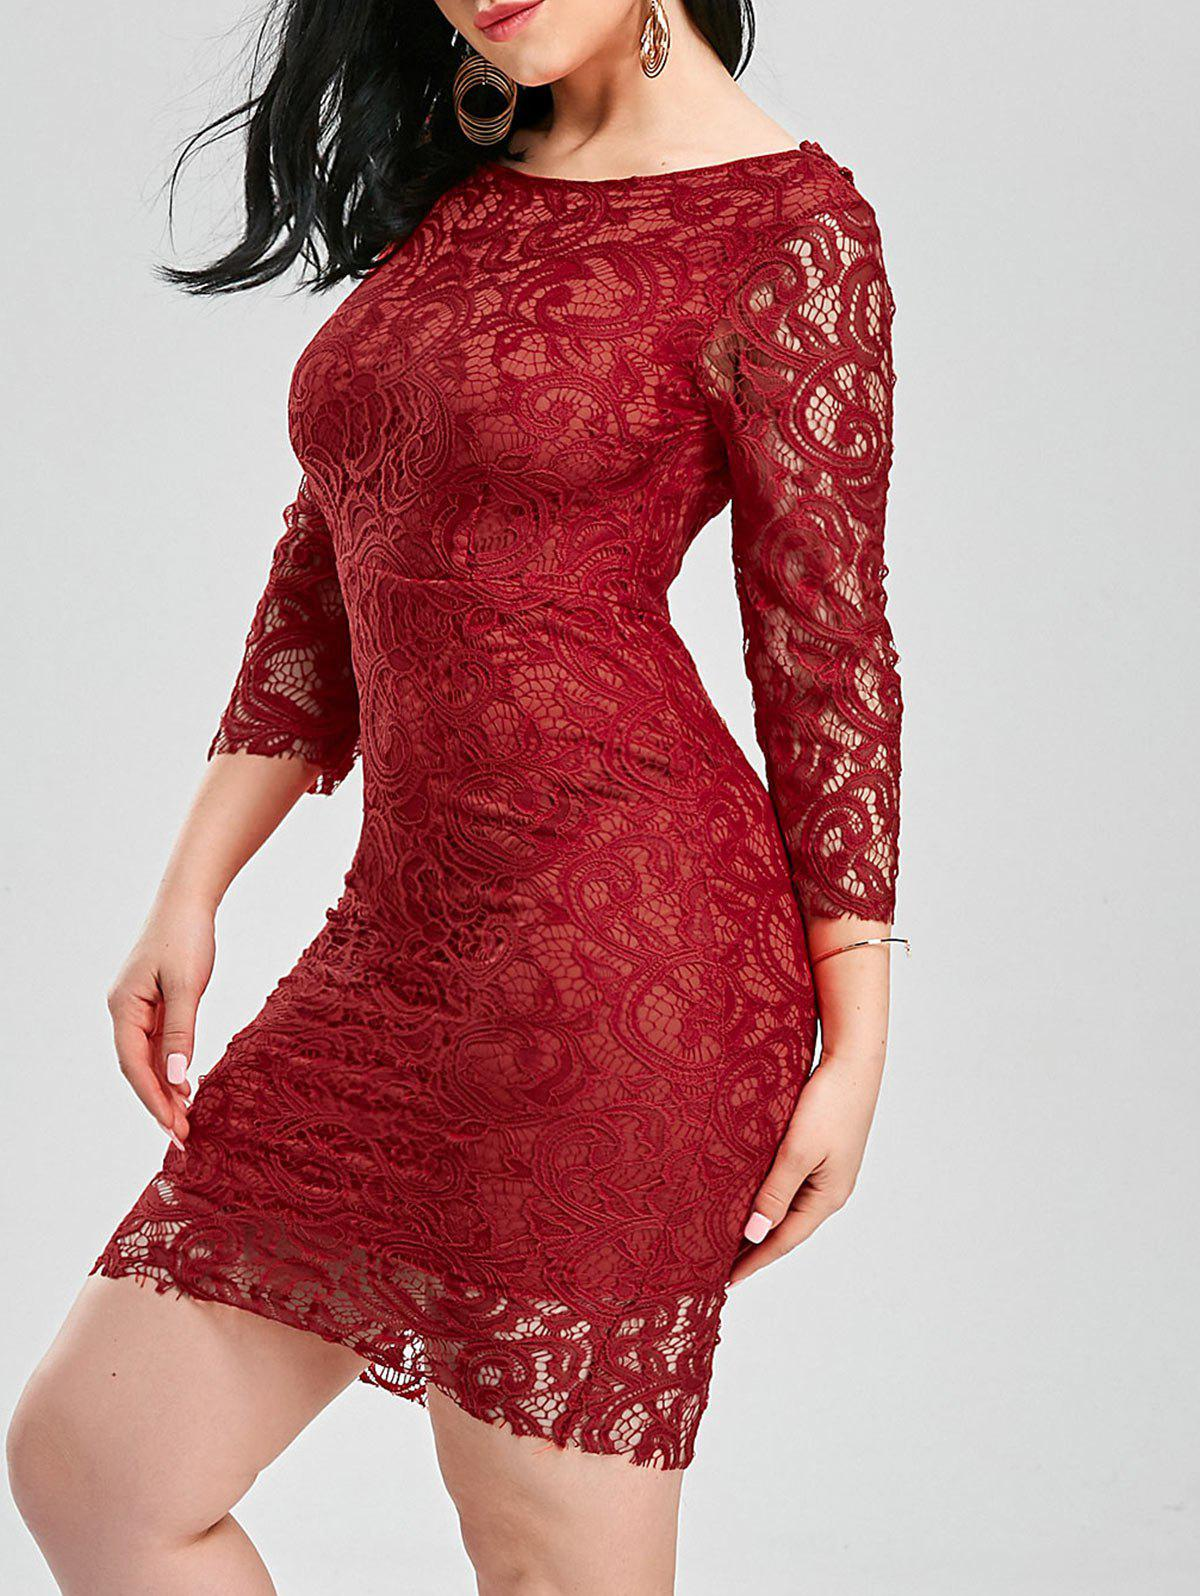 Unique Backless Lace Tight Short Homecoming Dress